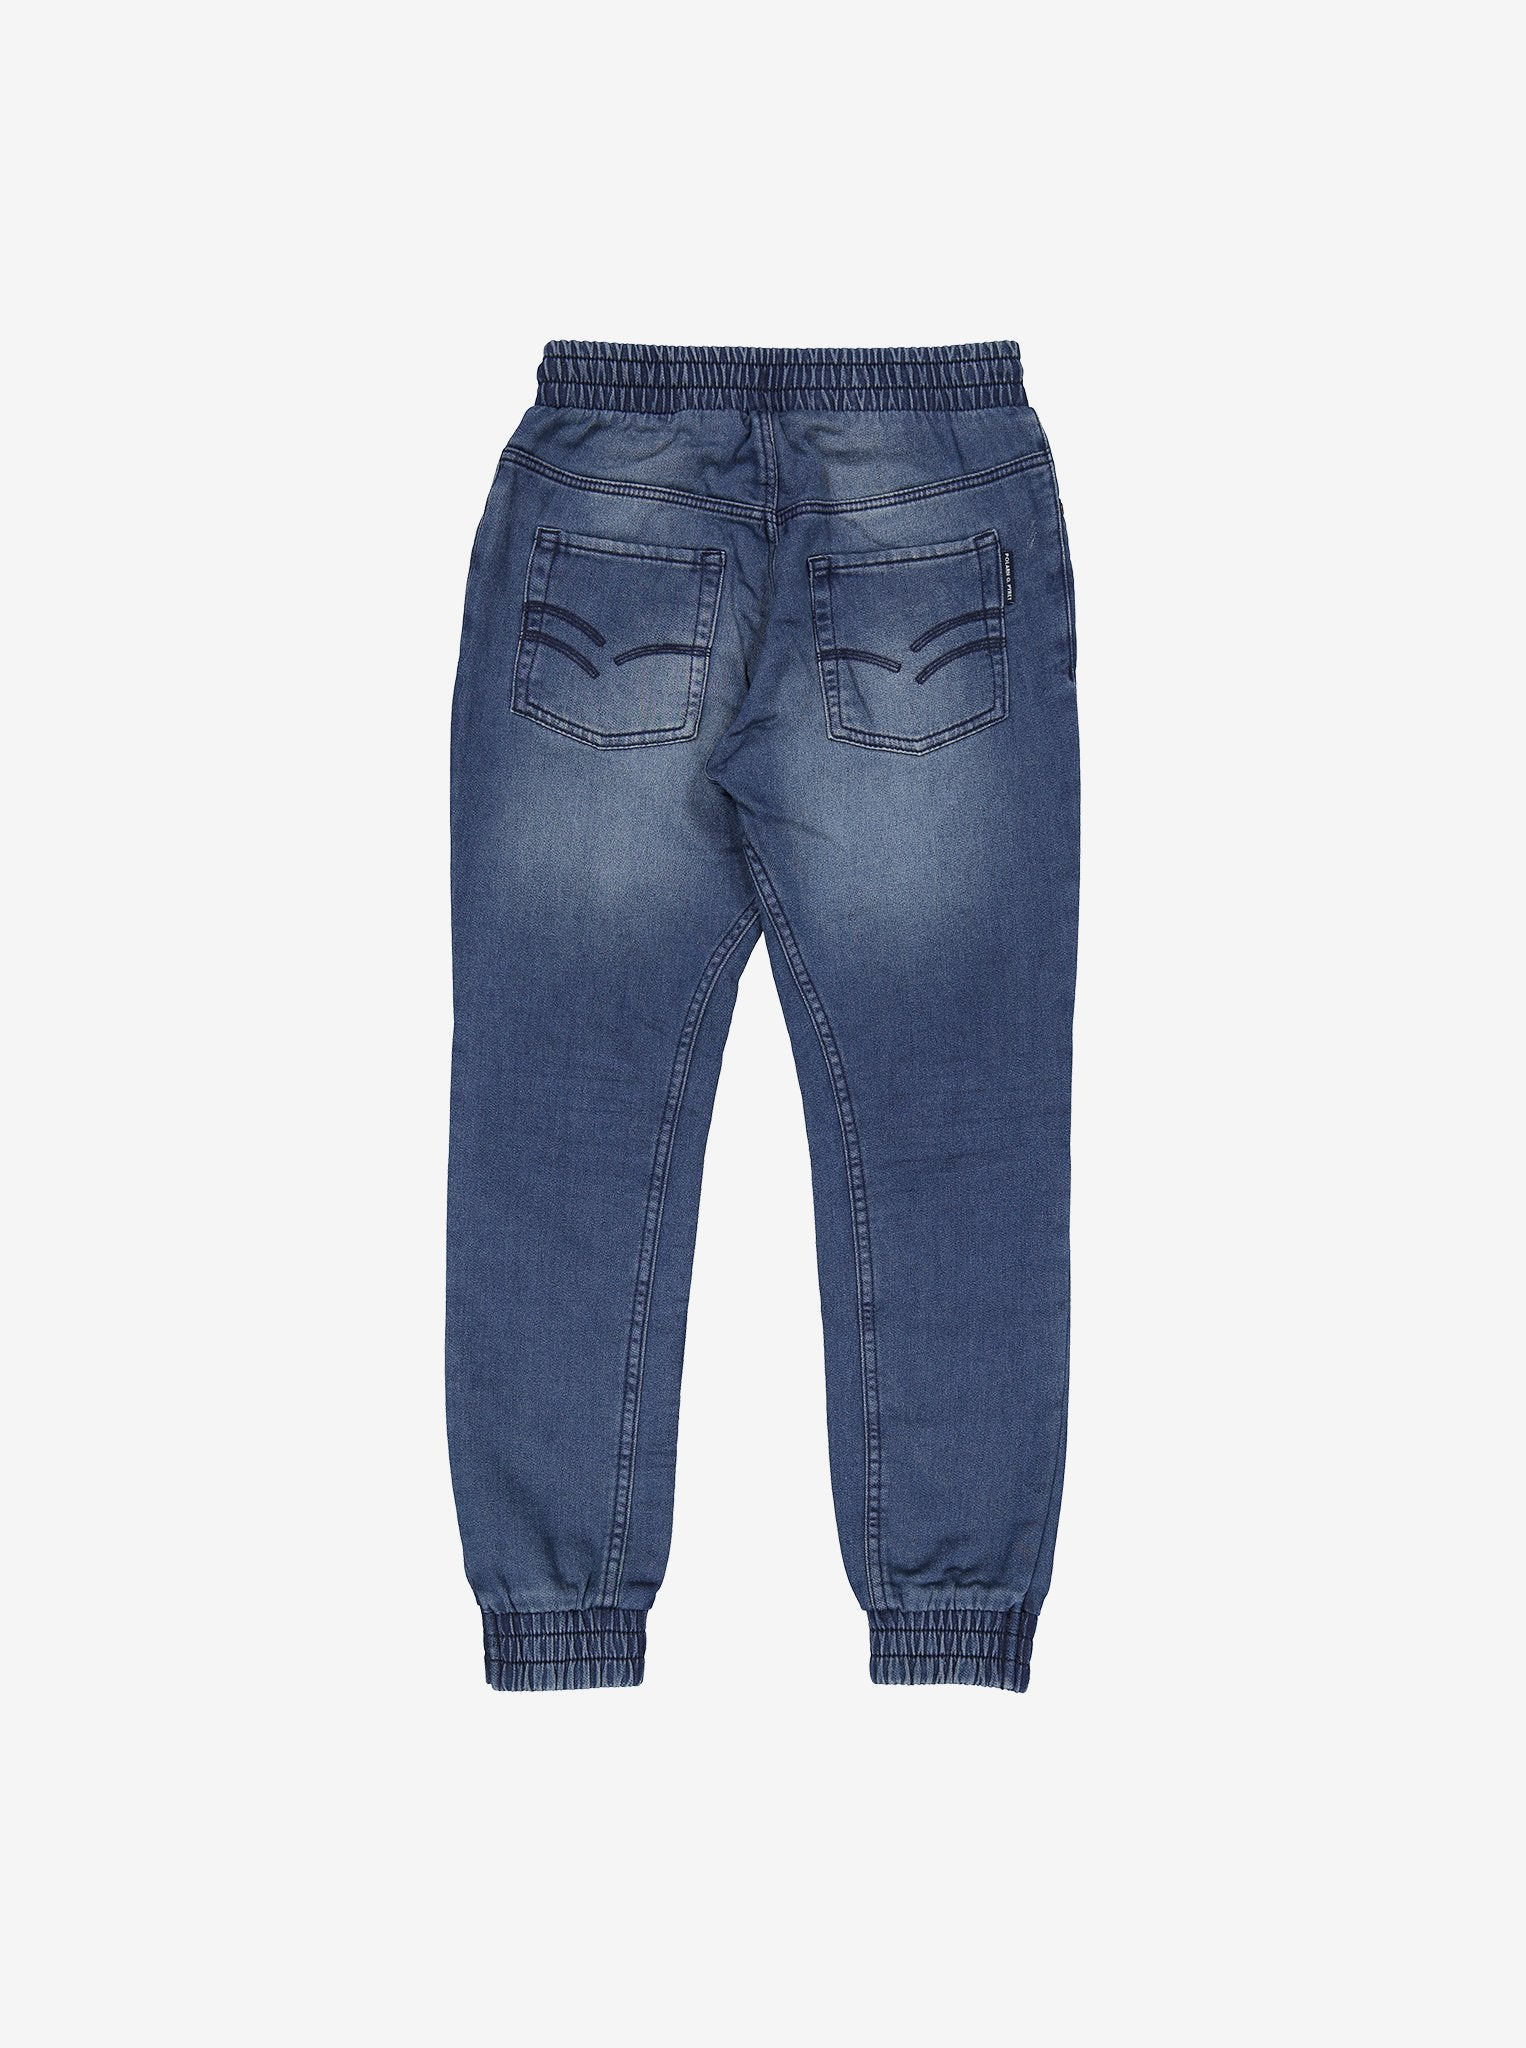 Pull On Kids Jogger Jeans